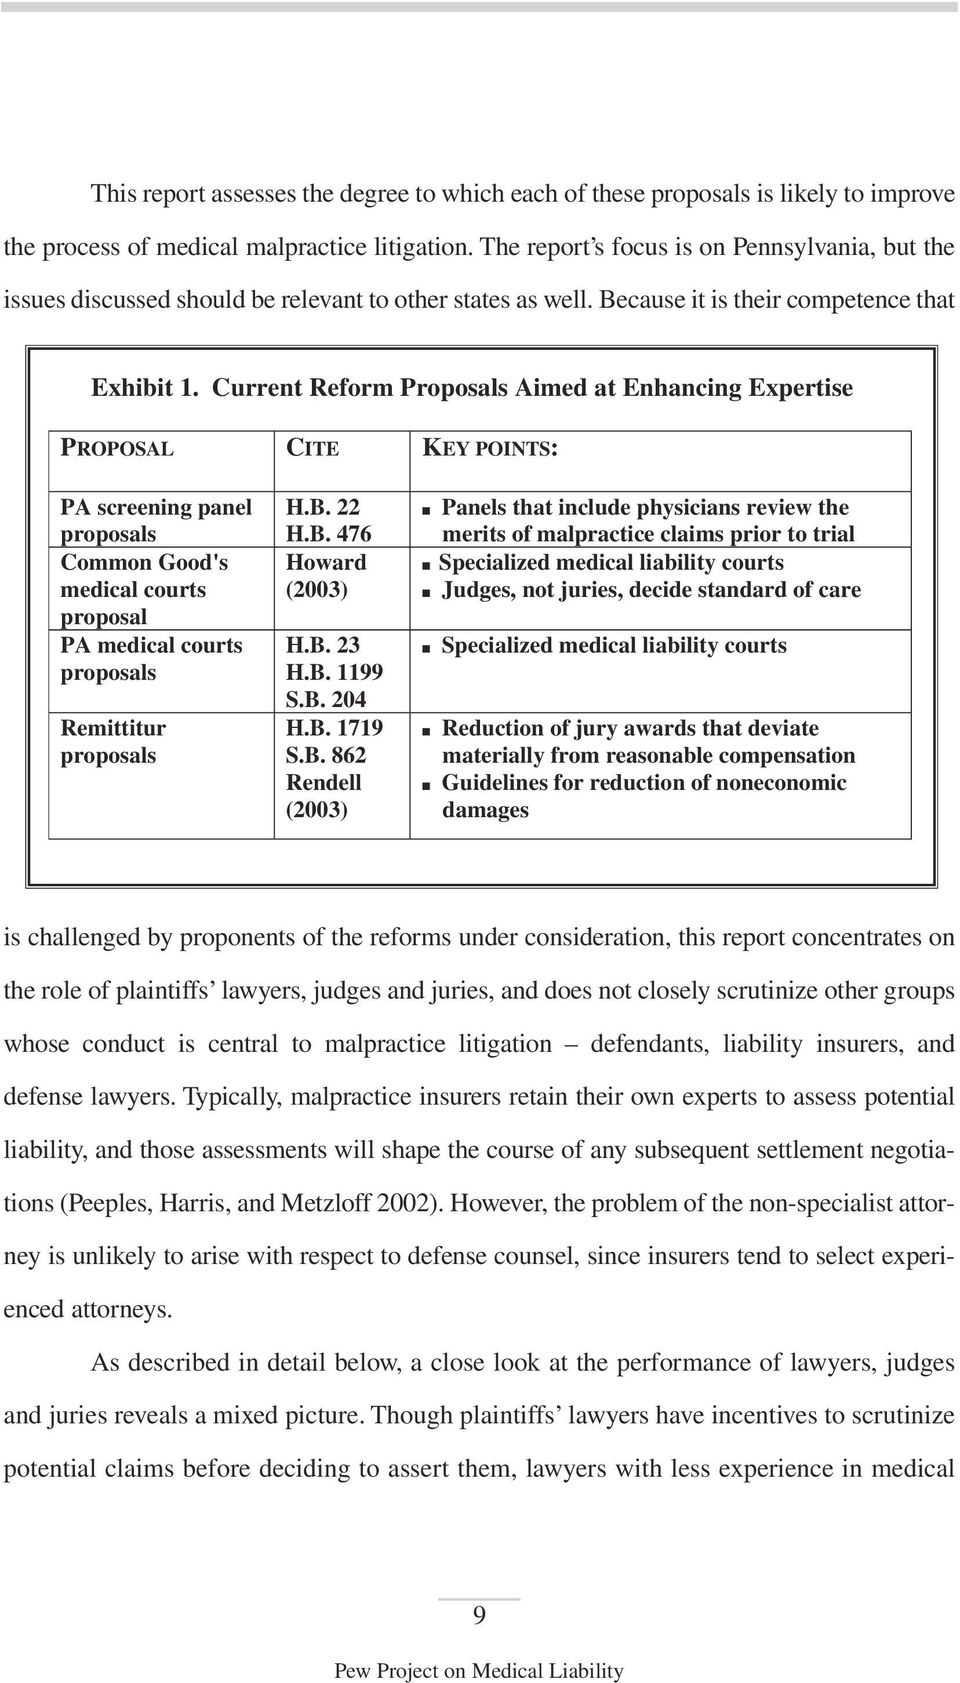 Current Reform Proposals Aimed at Enhancing Expertise PROPOSAL CITE KEY POINTS: PA screening panel proposals Common Good's medical courts proposal PA medical courts proposals Remittitur proposals H.B.